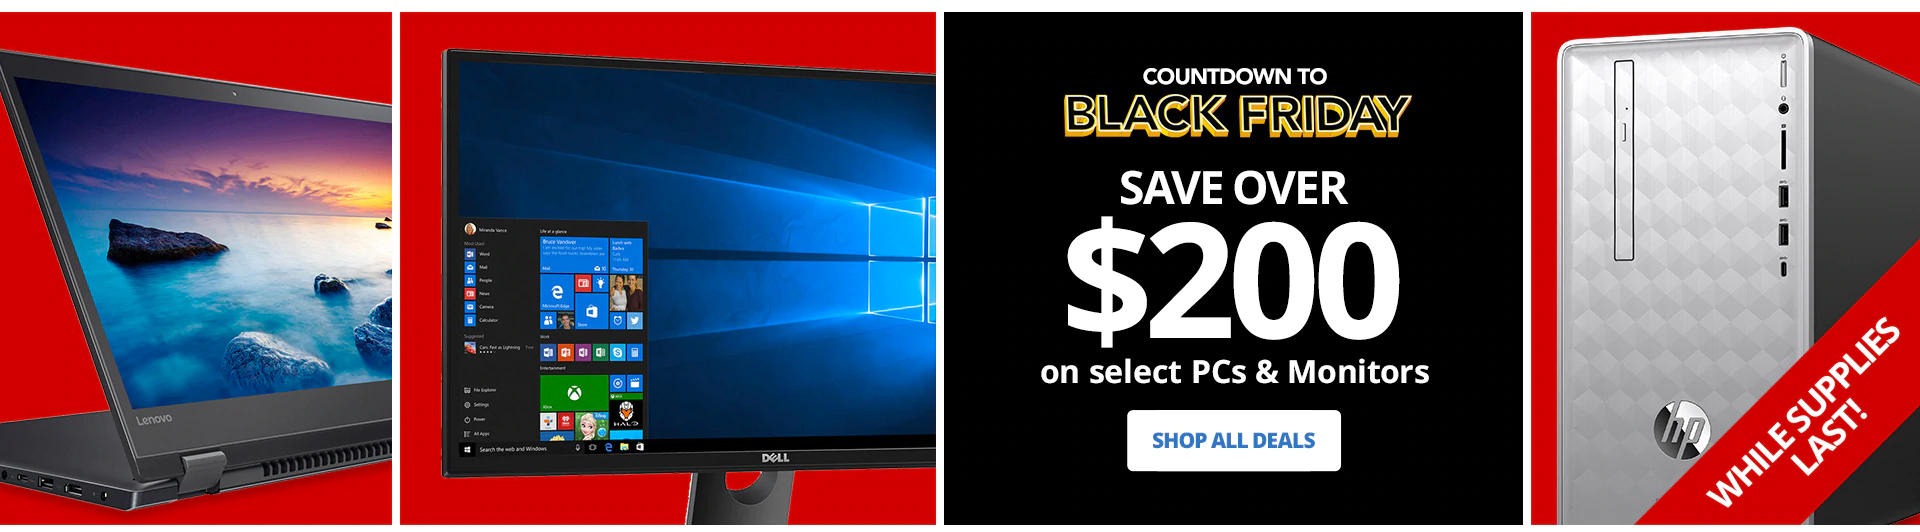 Save Over 200 On Select PCs & Monitors